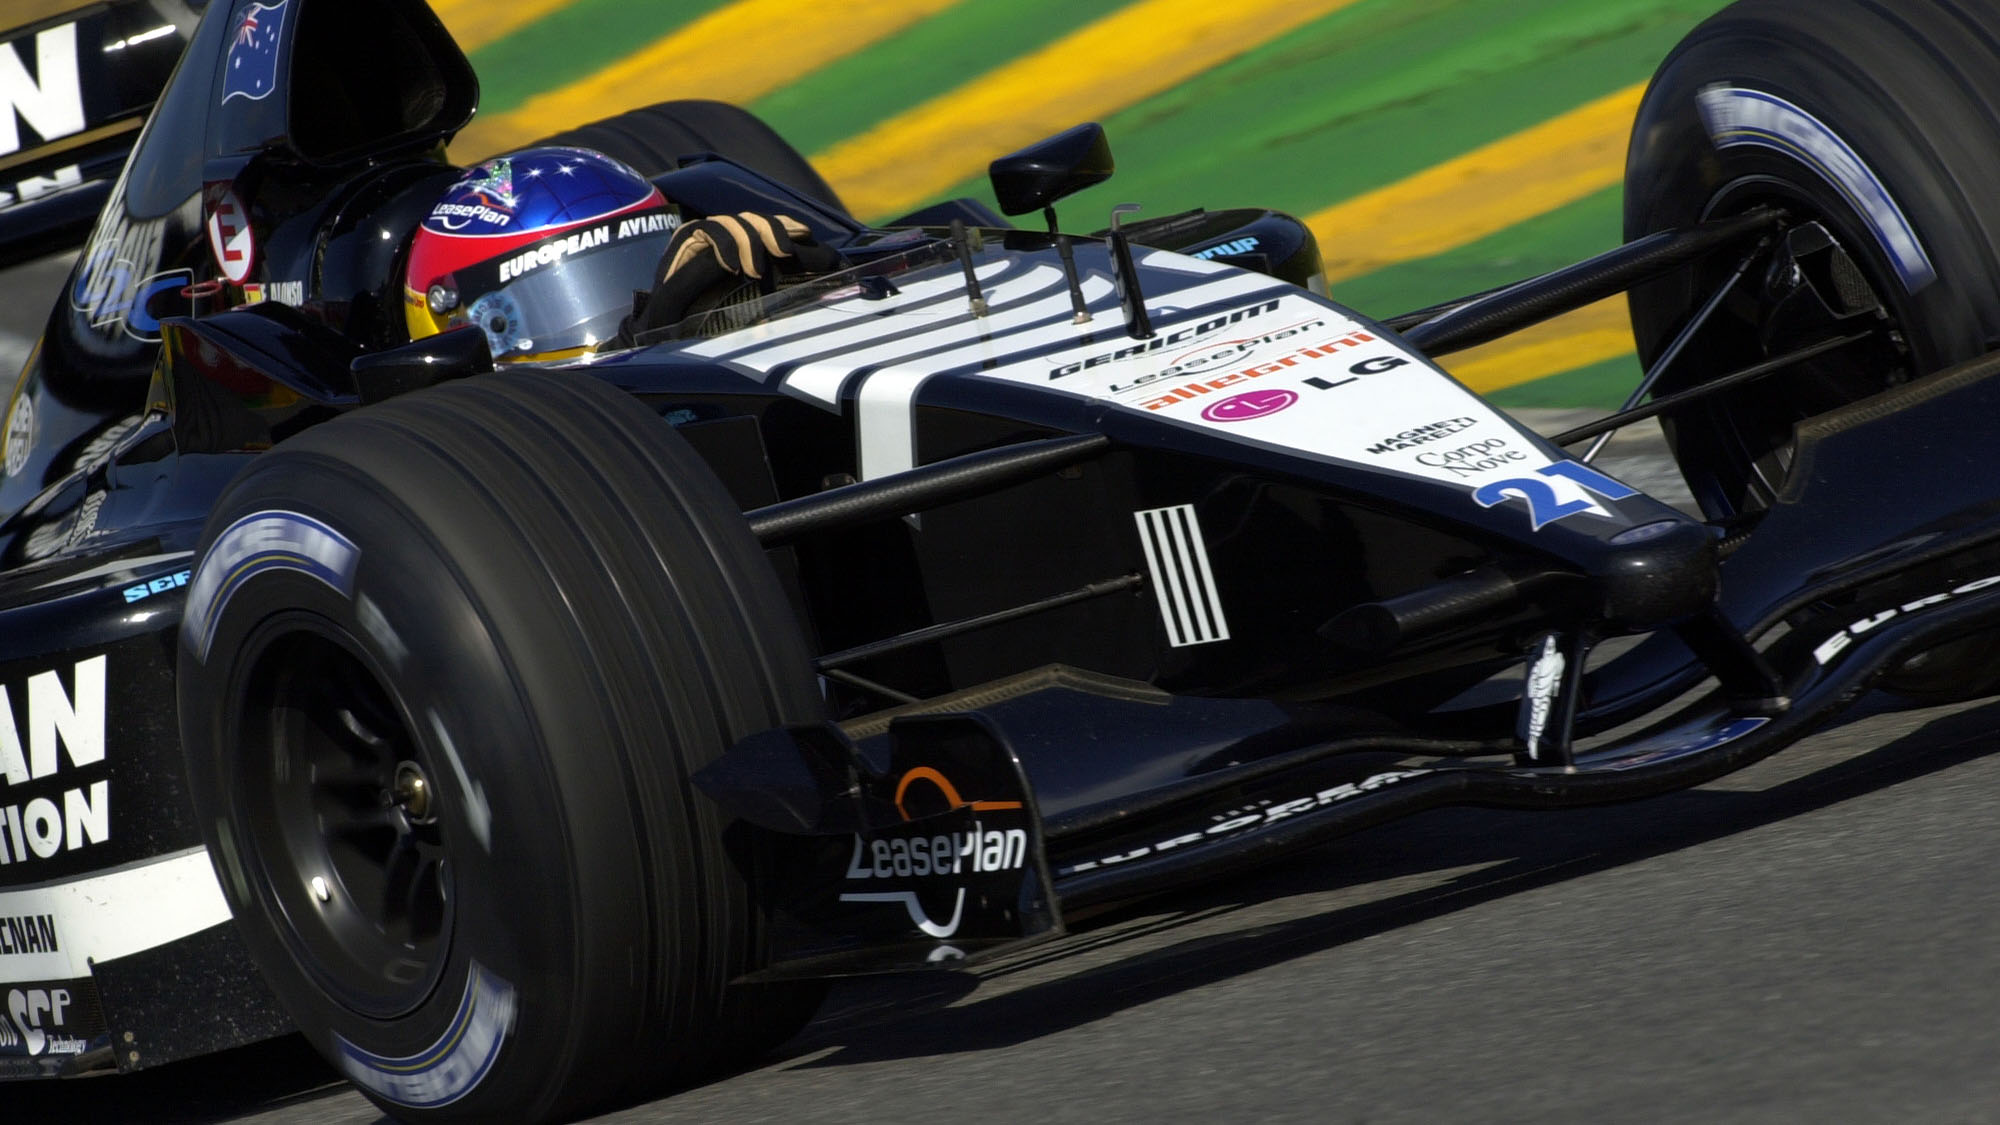 Minardi's miraculous F1 rebirth: 'Even Fernando Alonso was building the car!'